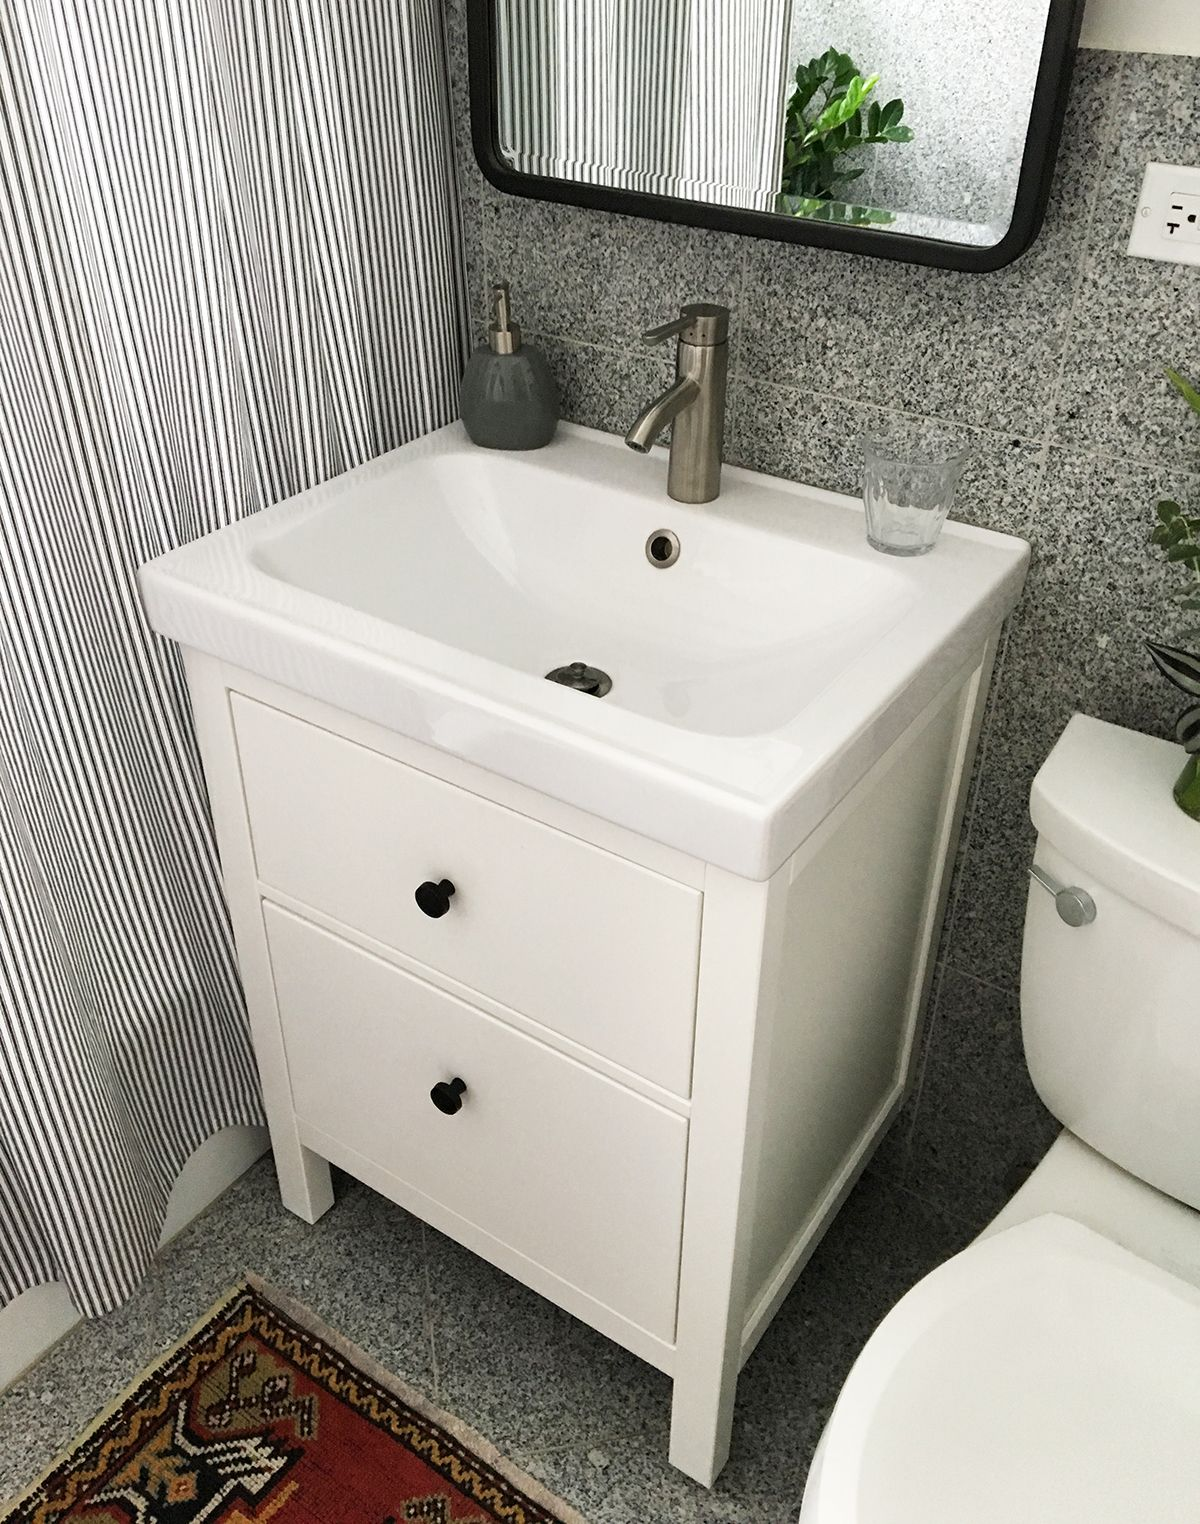 Bathroom Sinks And Vanities Installing A Hemnes / Odensvik Bathroom Vanity And Sink